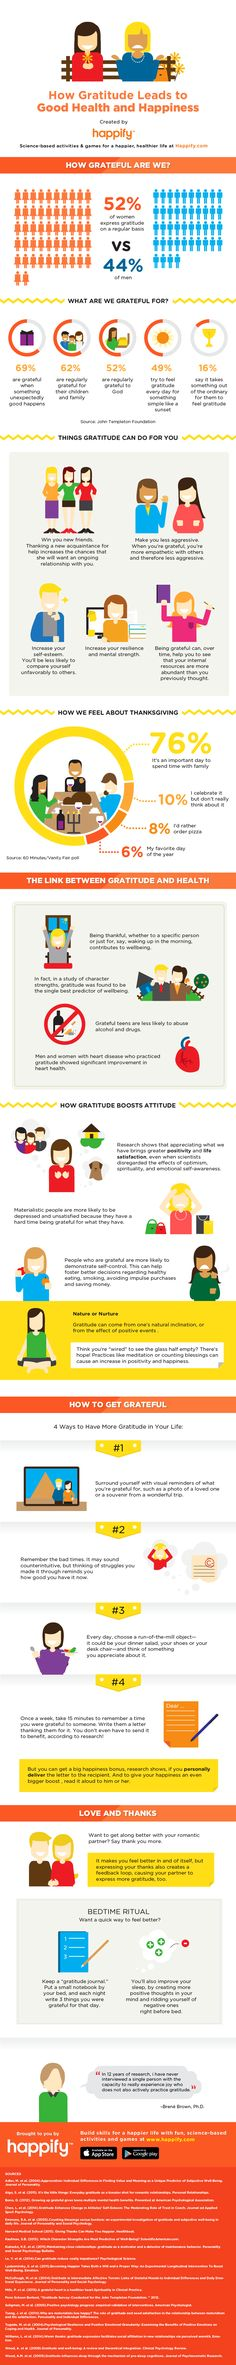 How Gratitude Leads to Good Health & Happiness [Infographic], via @HubSpot #workhealth #upgrow